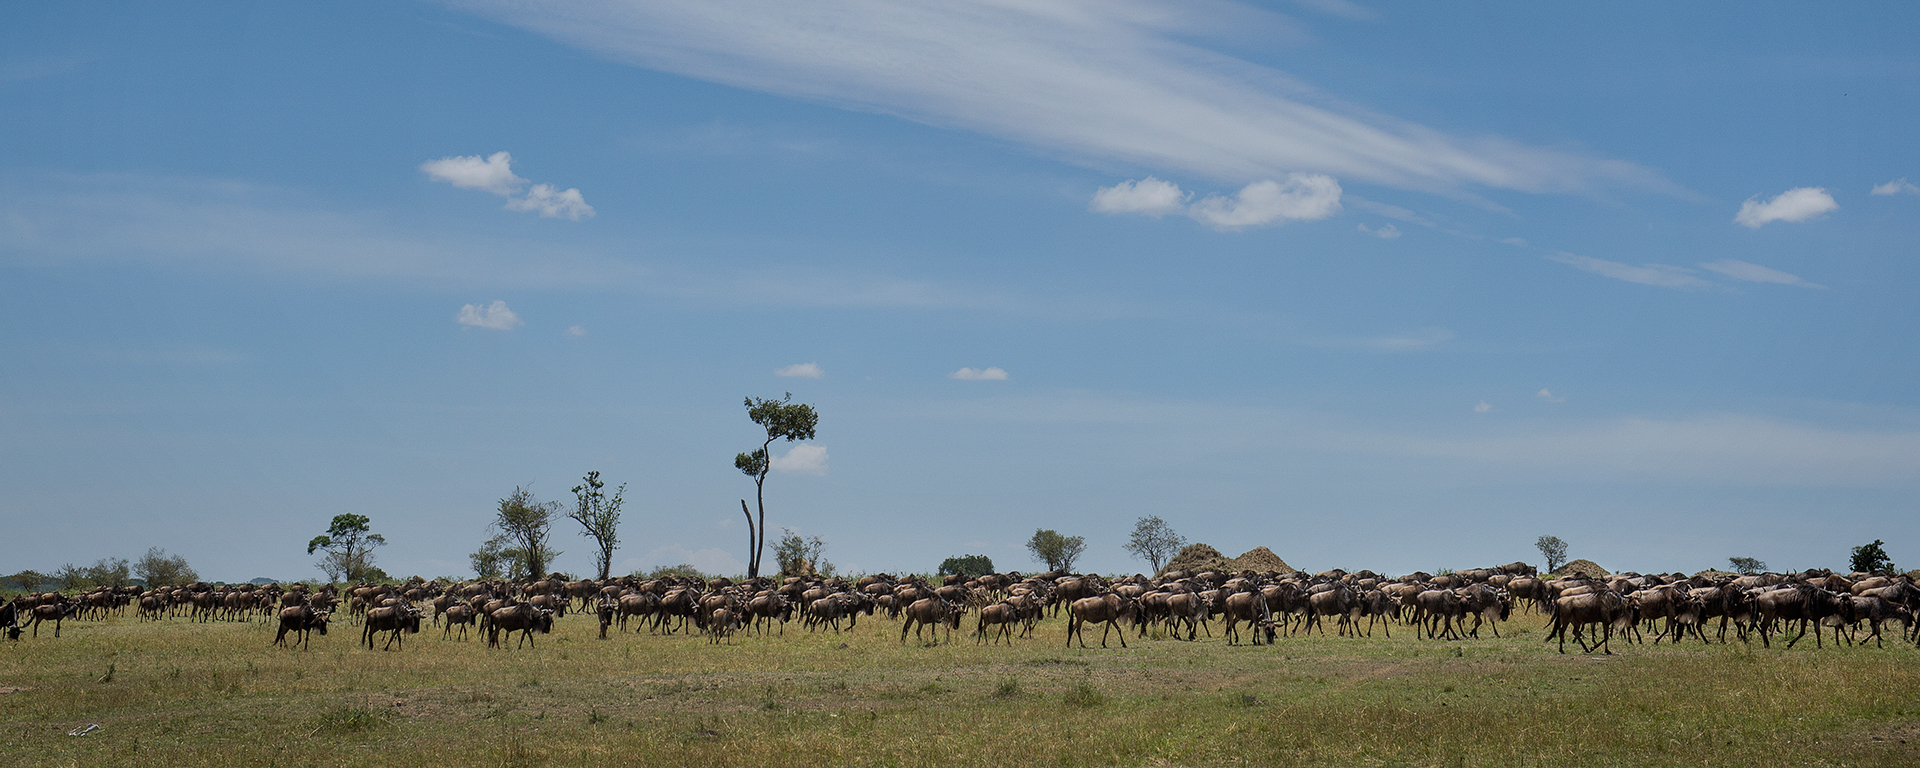 Not much beats the thrill of being in the midst of the Migration on the golden plains of the Serengeti.